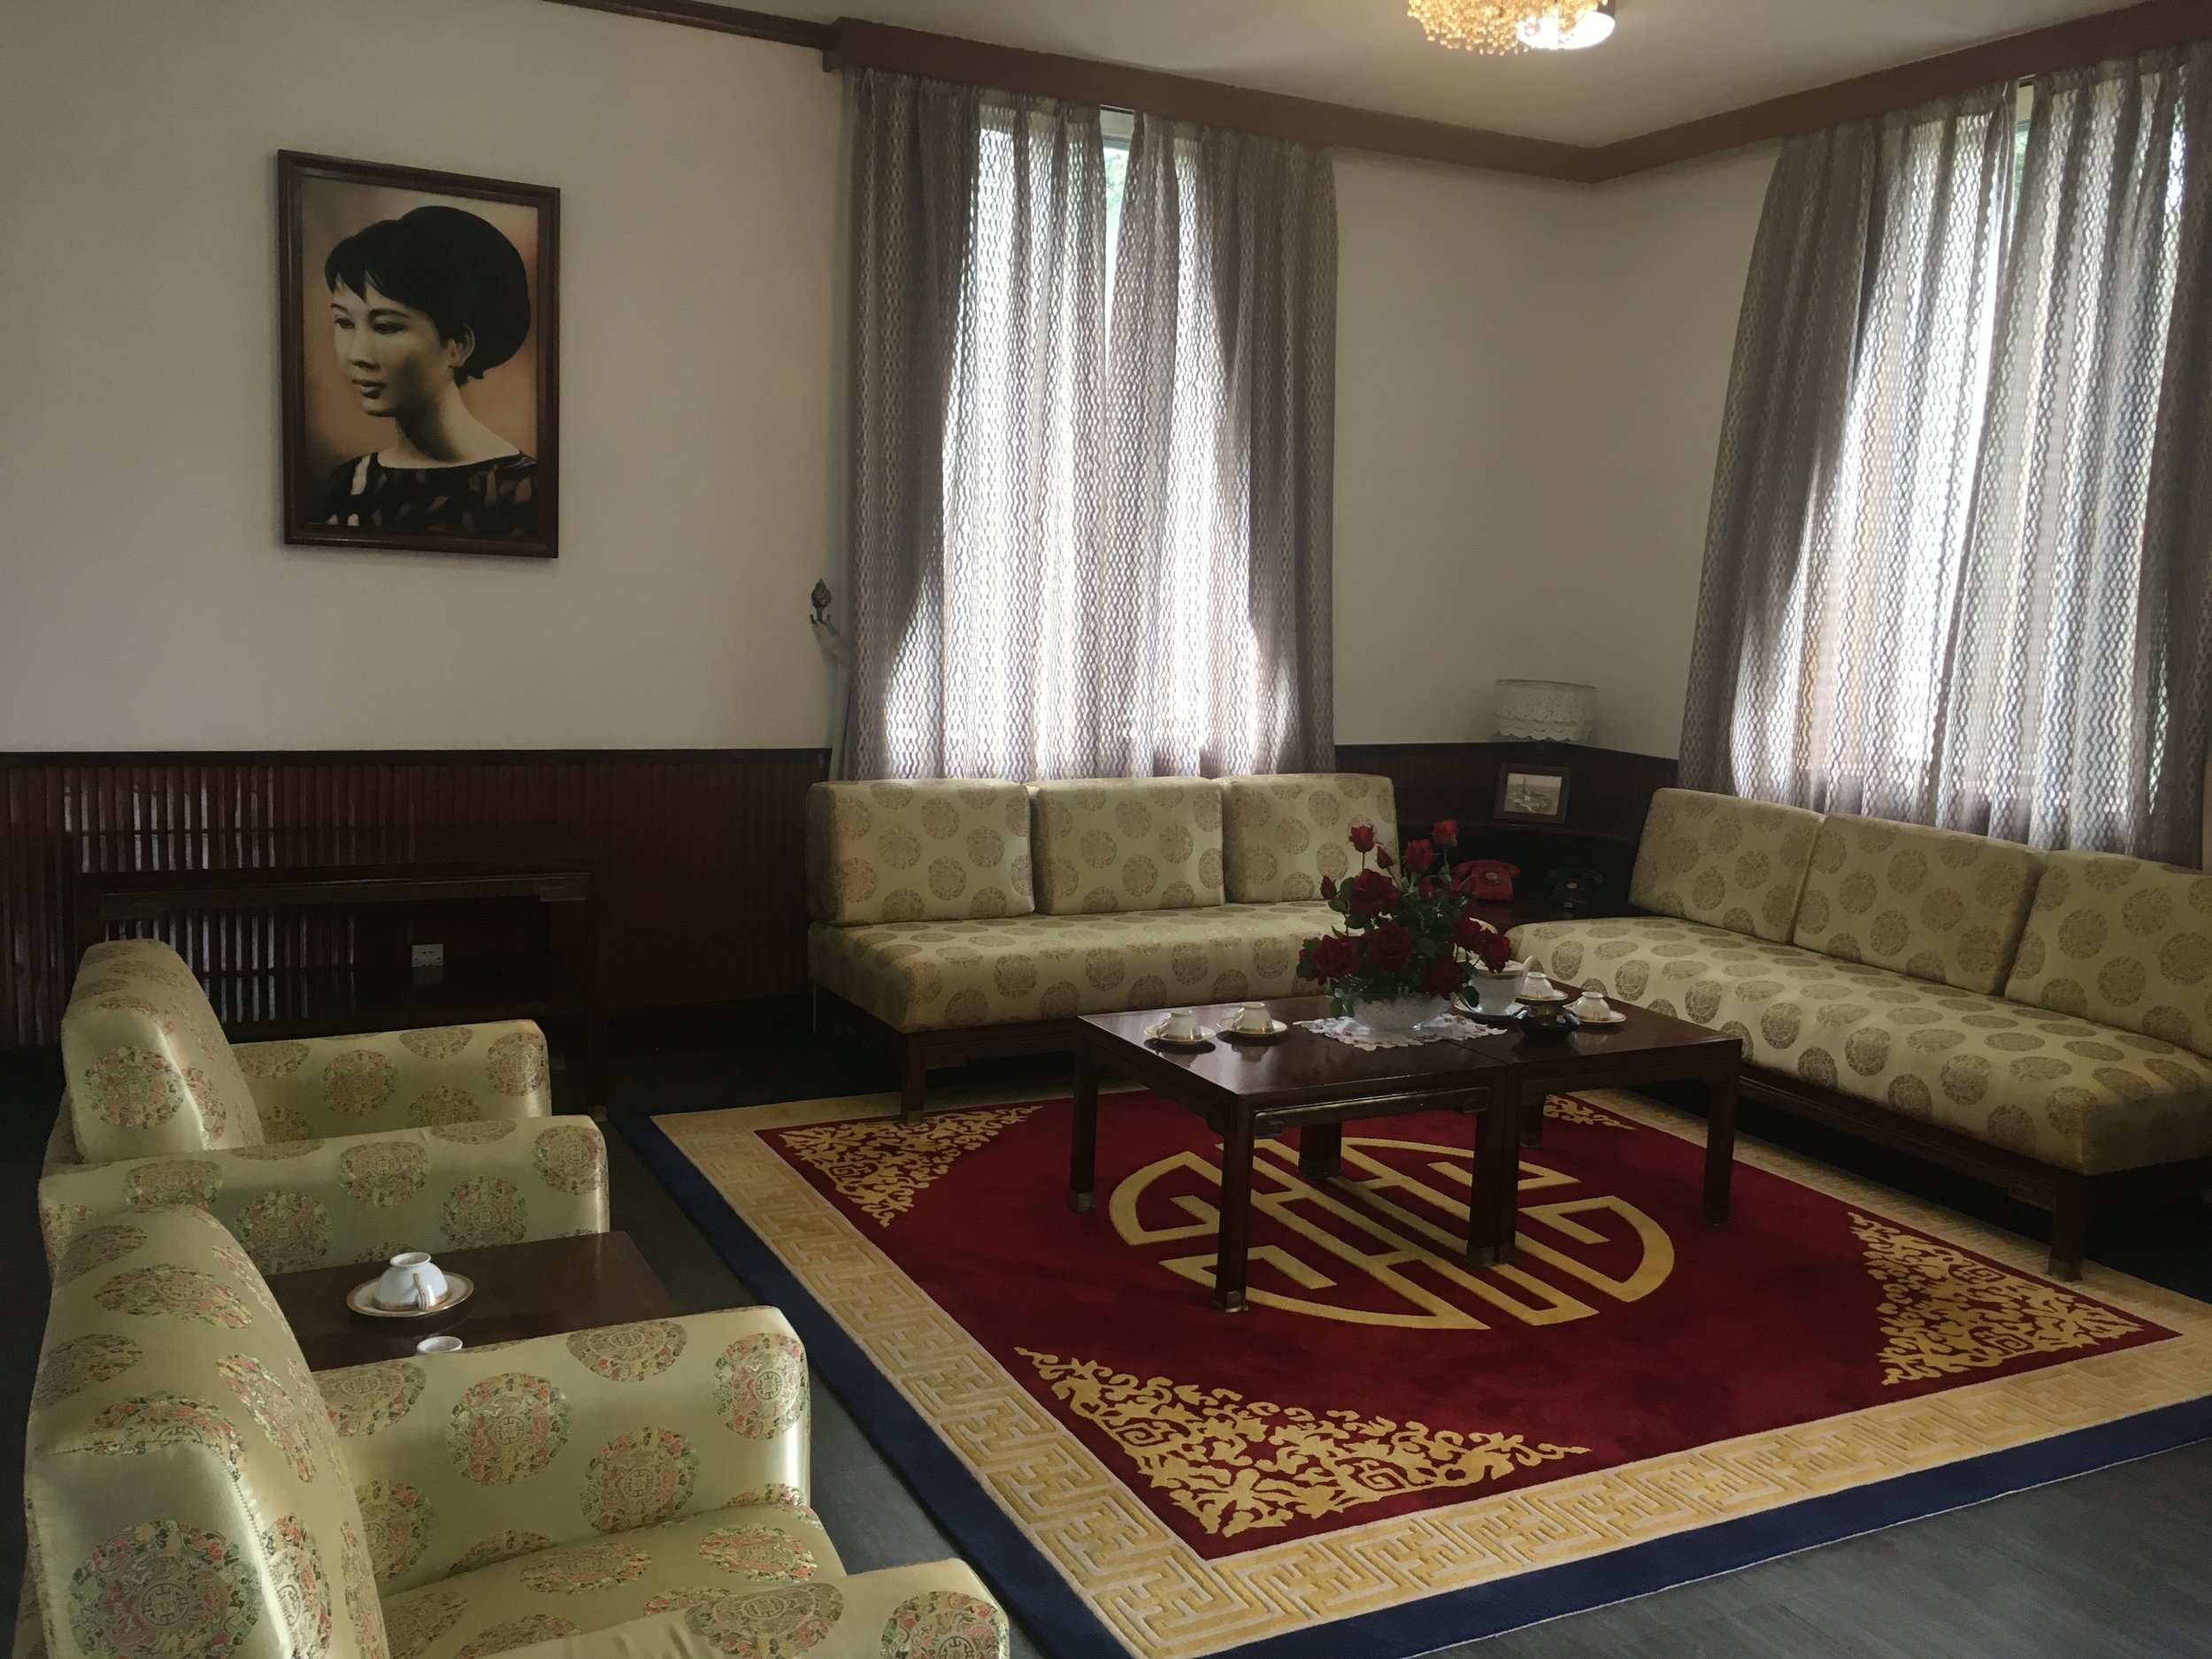 The interior of the Independence Palace Museum, the home and headquarters of the former President of South Vietnam.